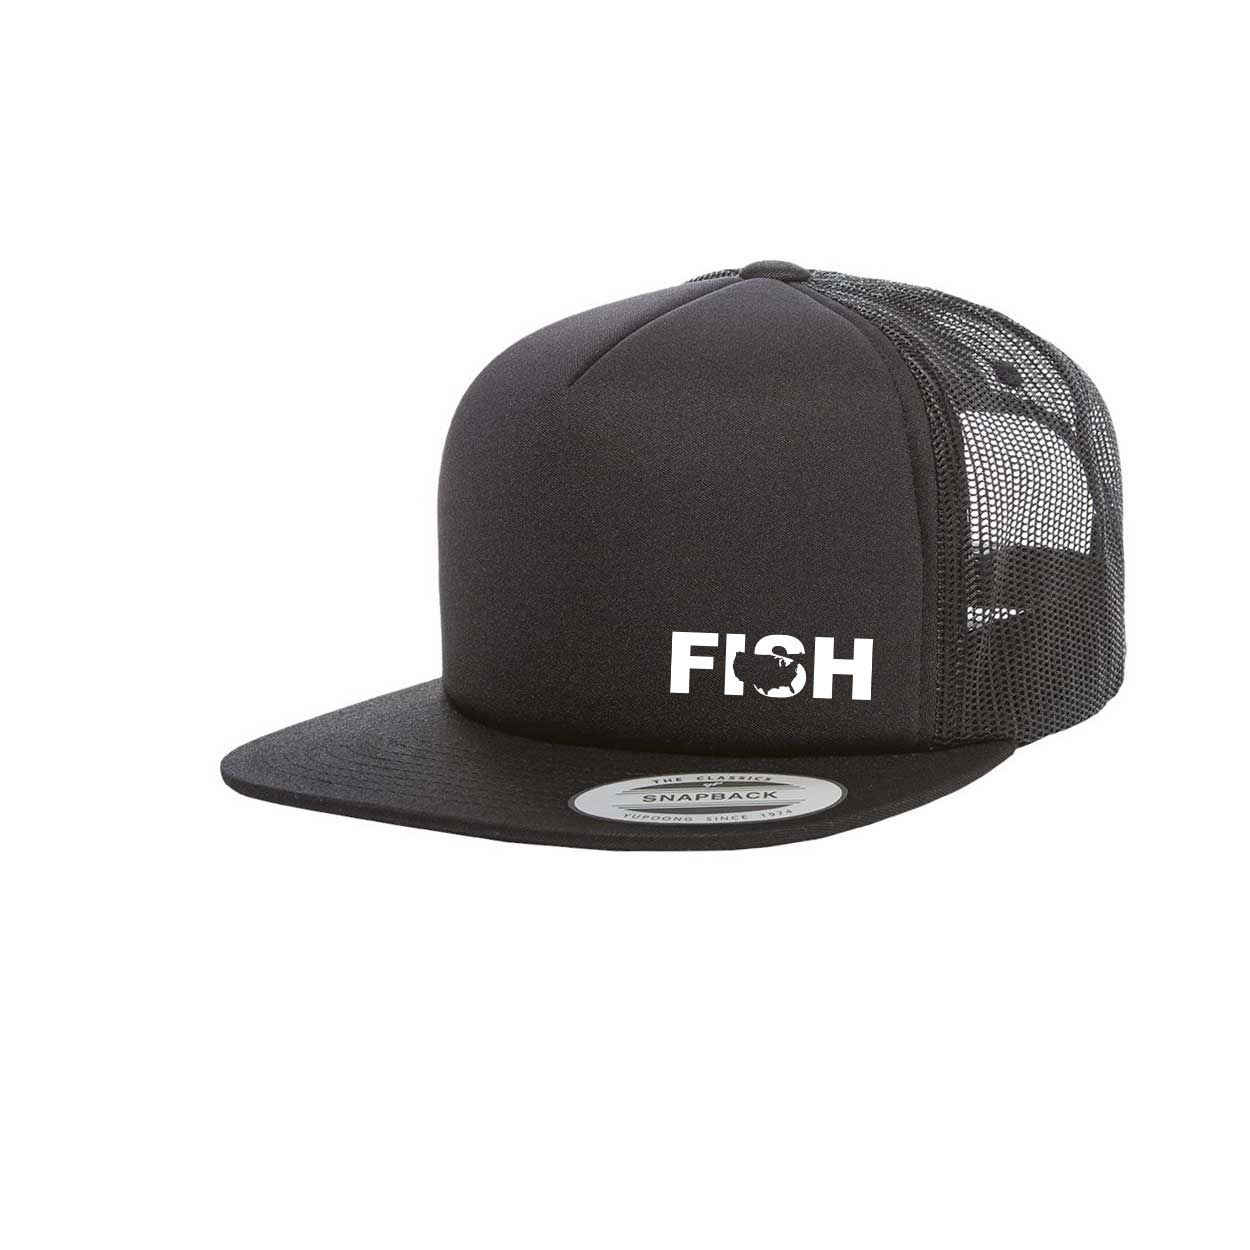 Fish United States Night Out Premium Foam Flat Brim Snapback Hat Black (White Logo)